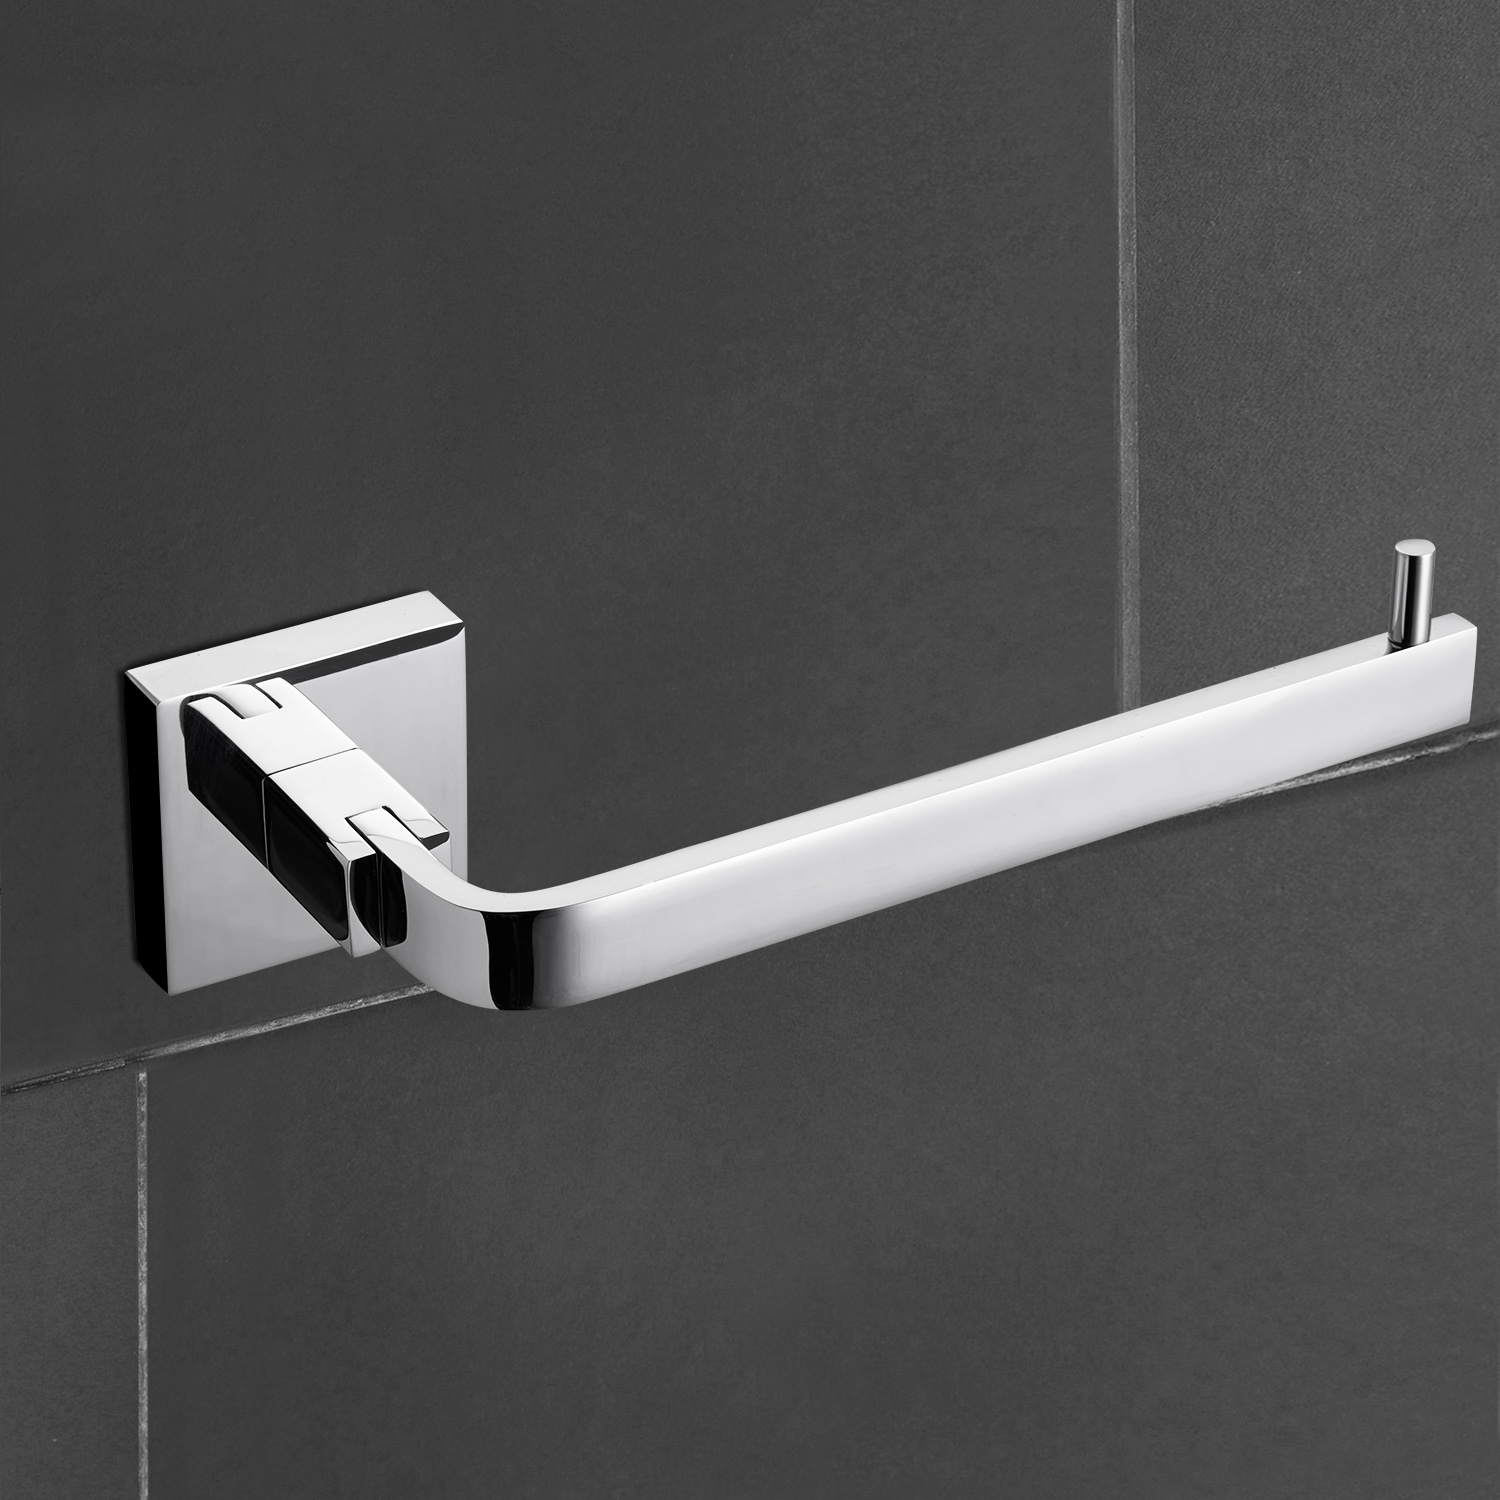 about modern chrome brass wall mounted bathroom towel rack robe hook